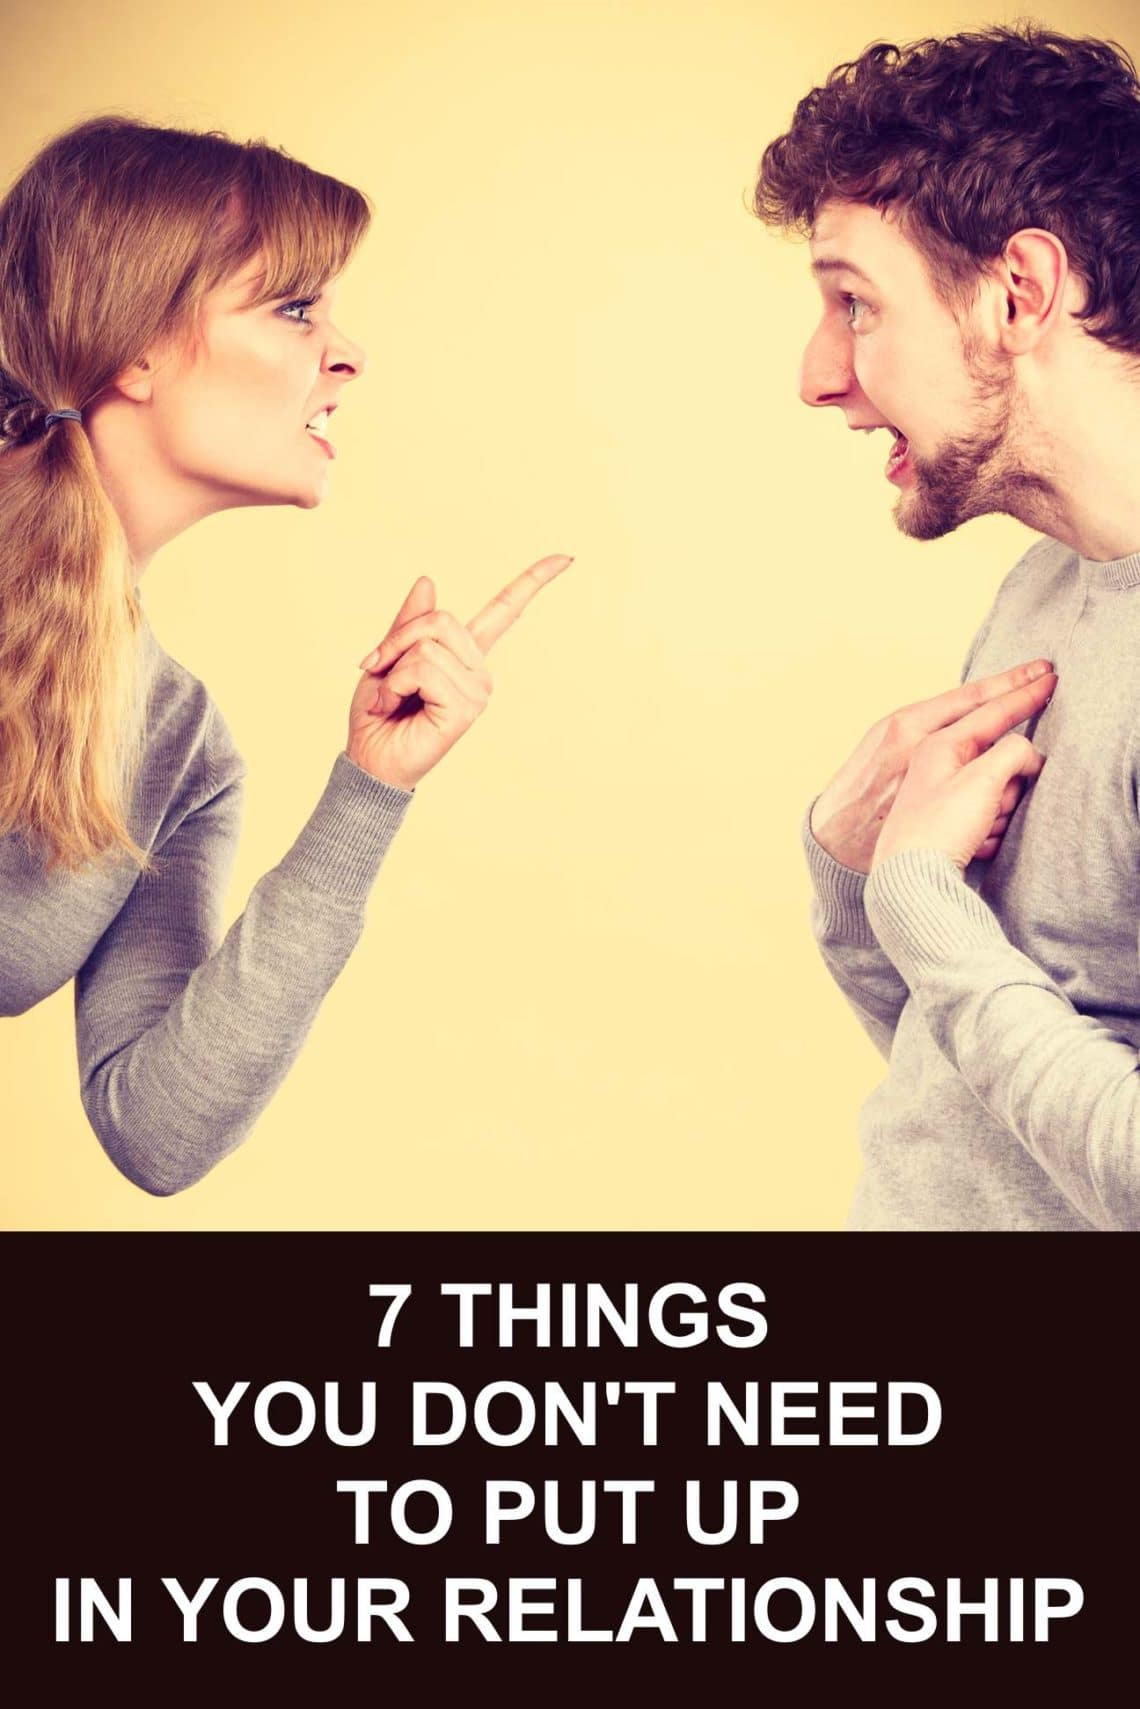 Are not entirely satisfied in your relationship? It doesn't have to be this way. Here's a list of things you should not put up with in a relationship.